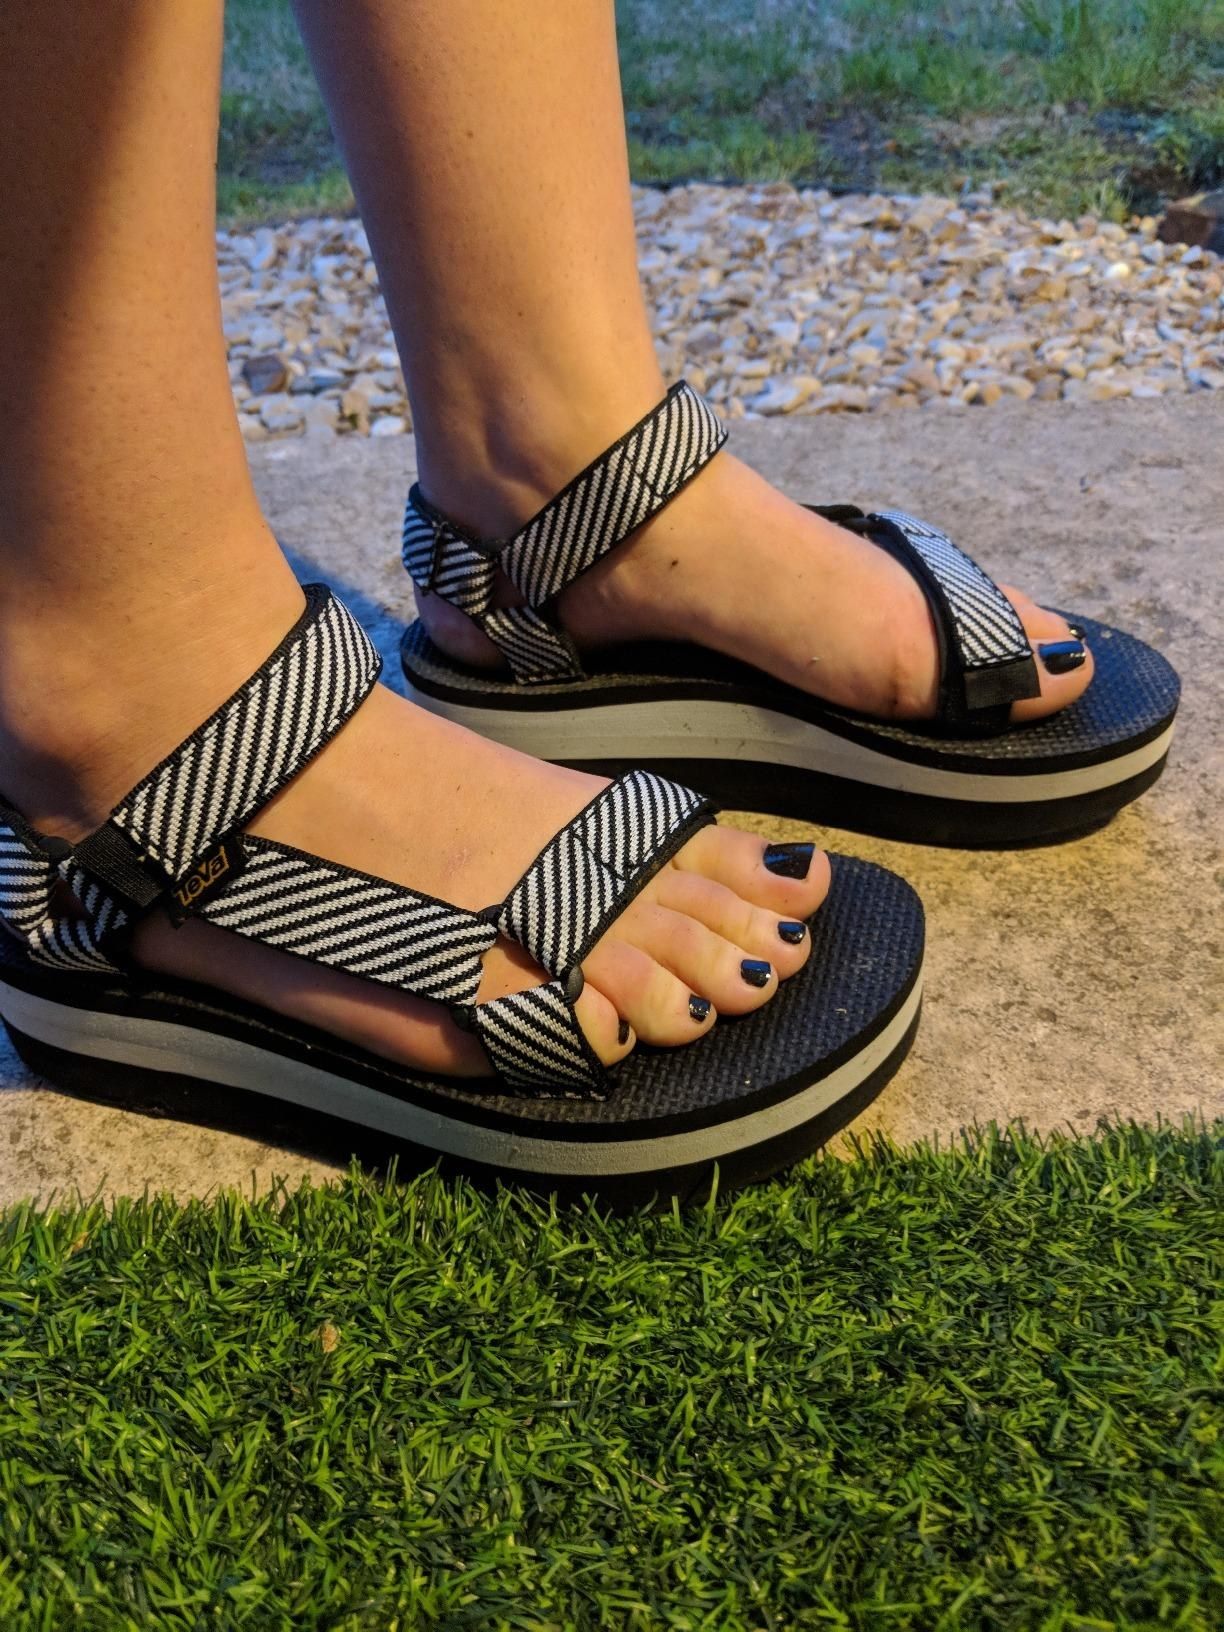 A reviewer wears the sandals in black and white stripes